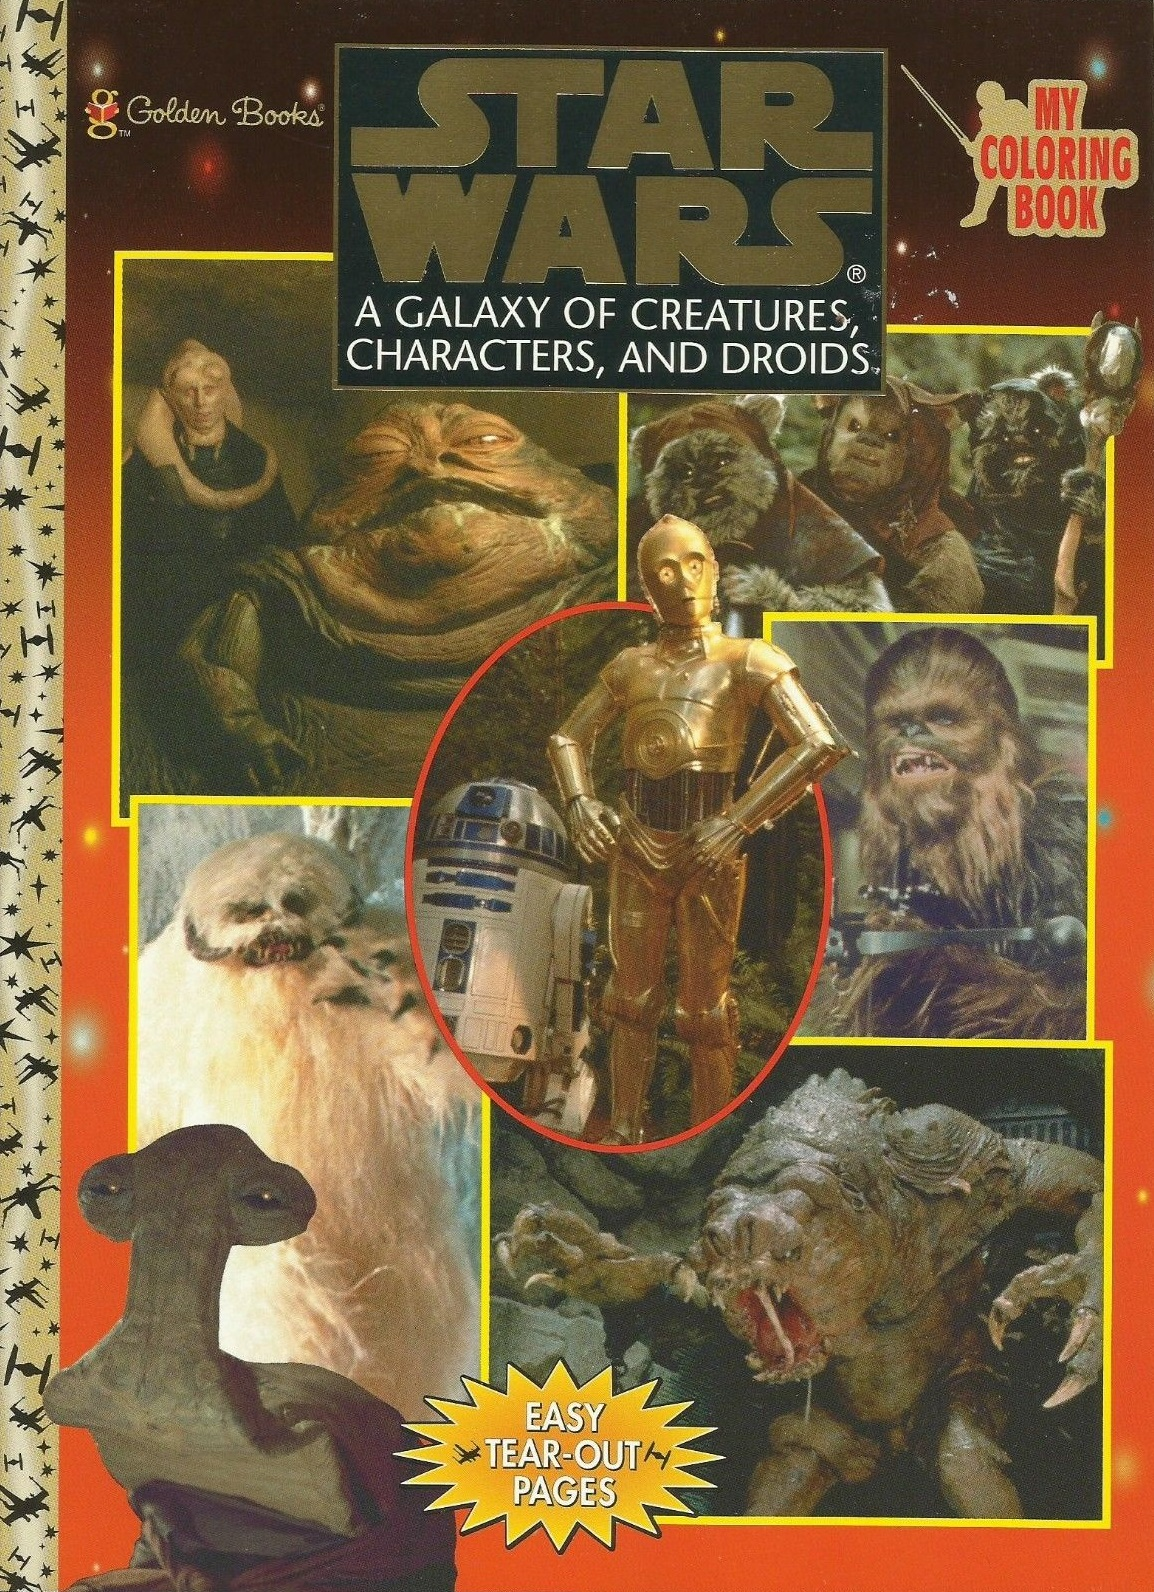 Star Wars: A Galaxy of Creatures, Characters, and Droids